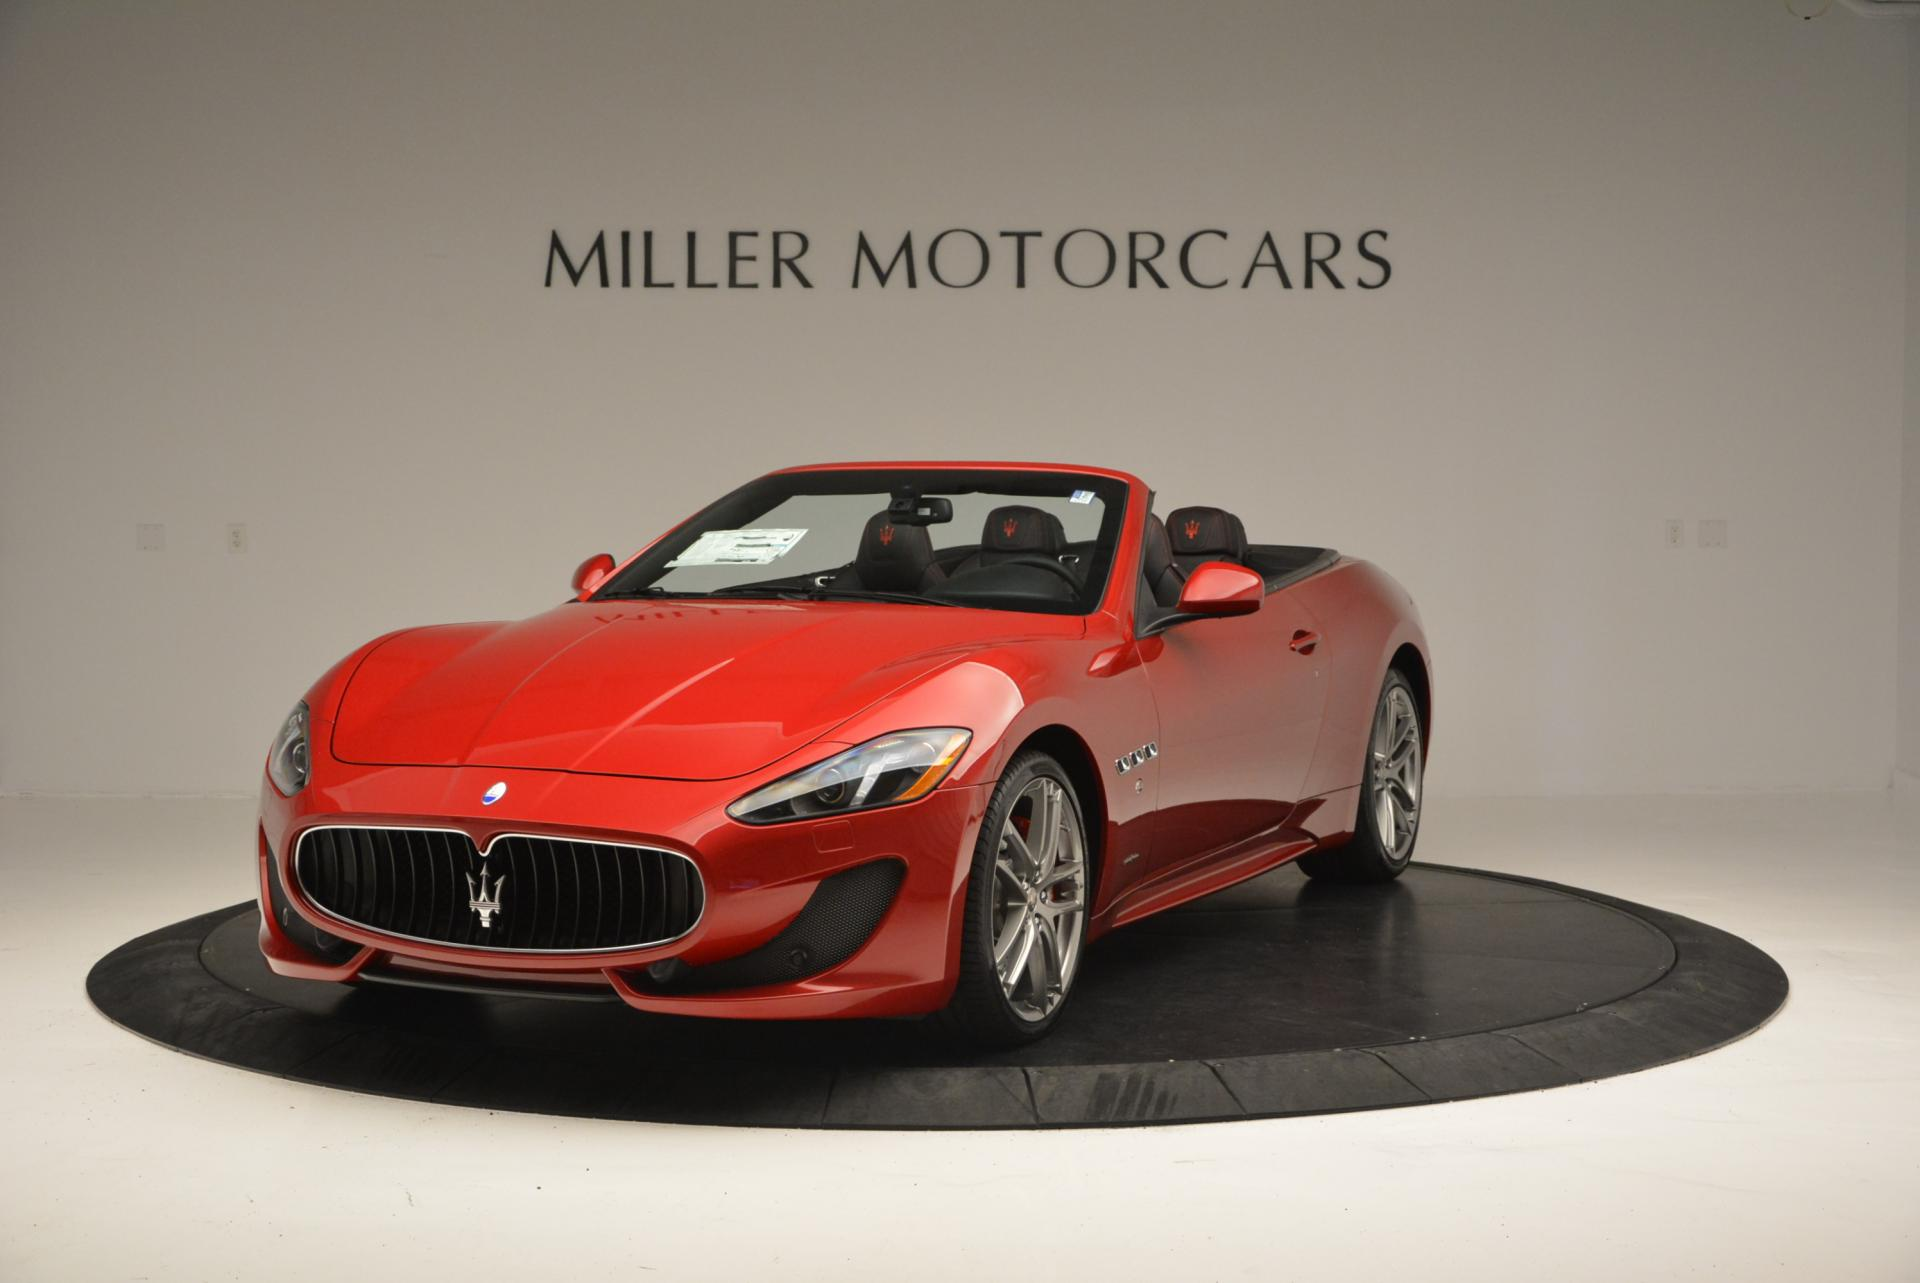 New 2017 Maserati GranTurismo Cab Sport for sale Sold at Bugatti of Greenwich in Greenwich CT 06830 1